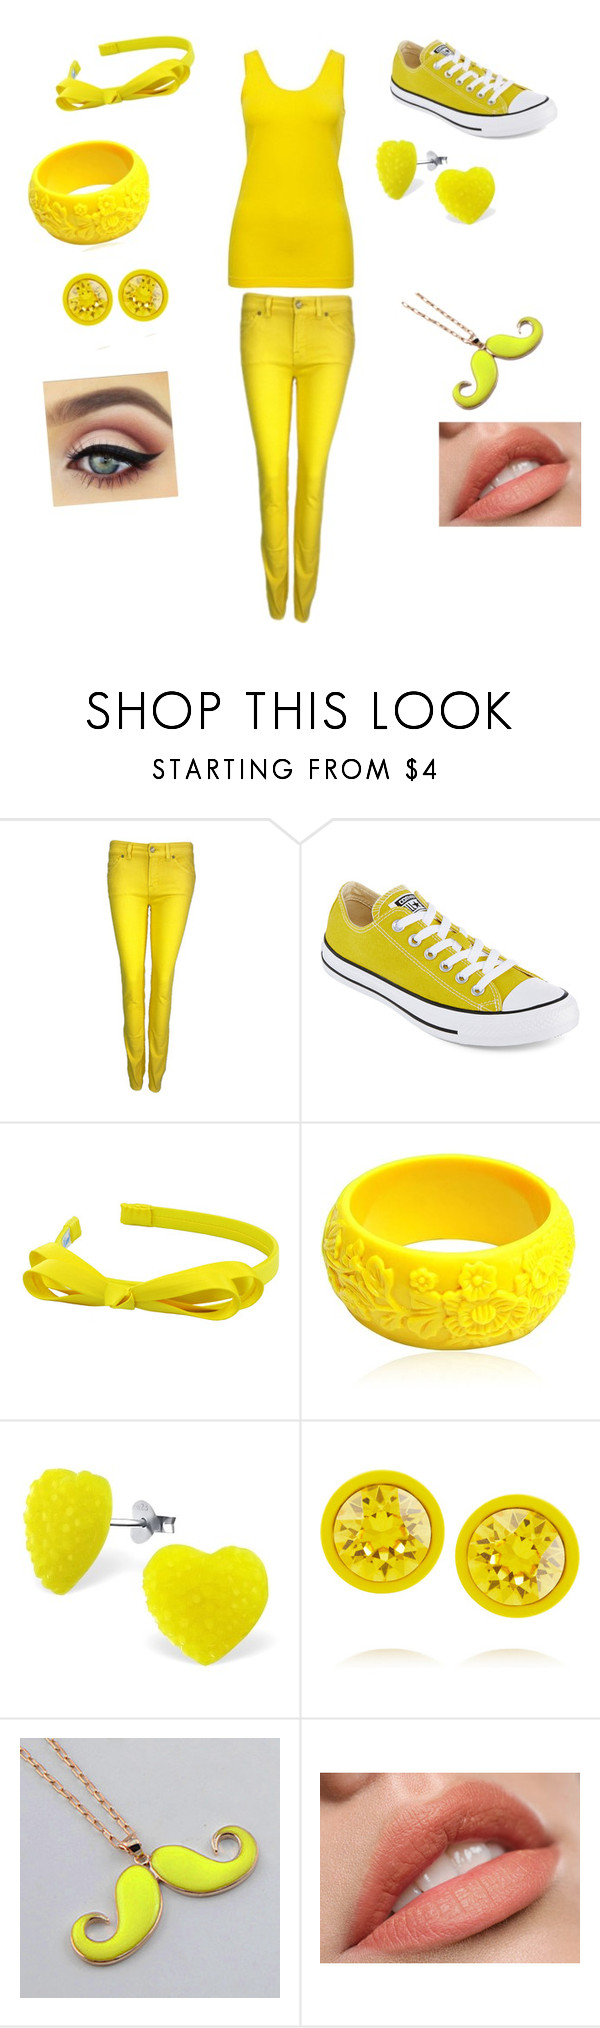 """princess belle"" by vyesica-yv on Polyvore featuring 7 For All Mankind, Converse, L. Erickson, Mariah Rovery and Givenchy"